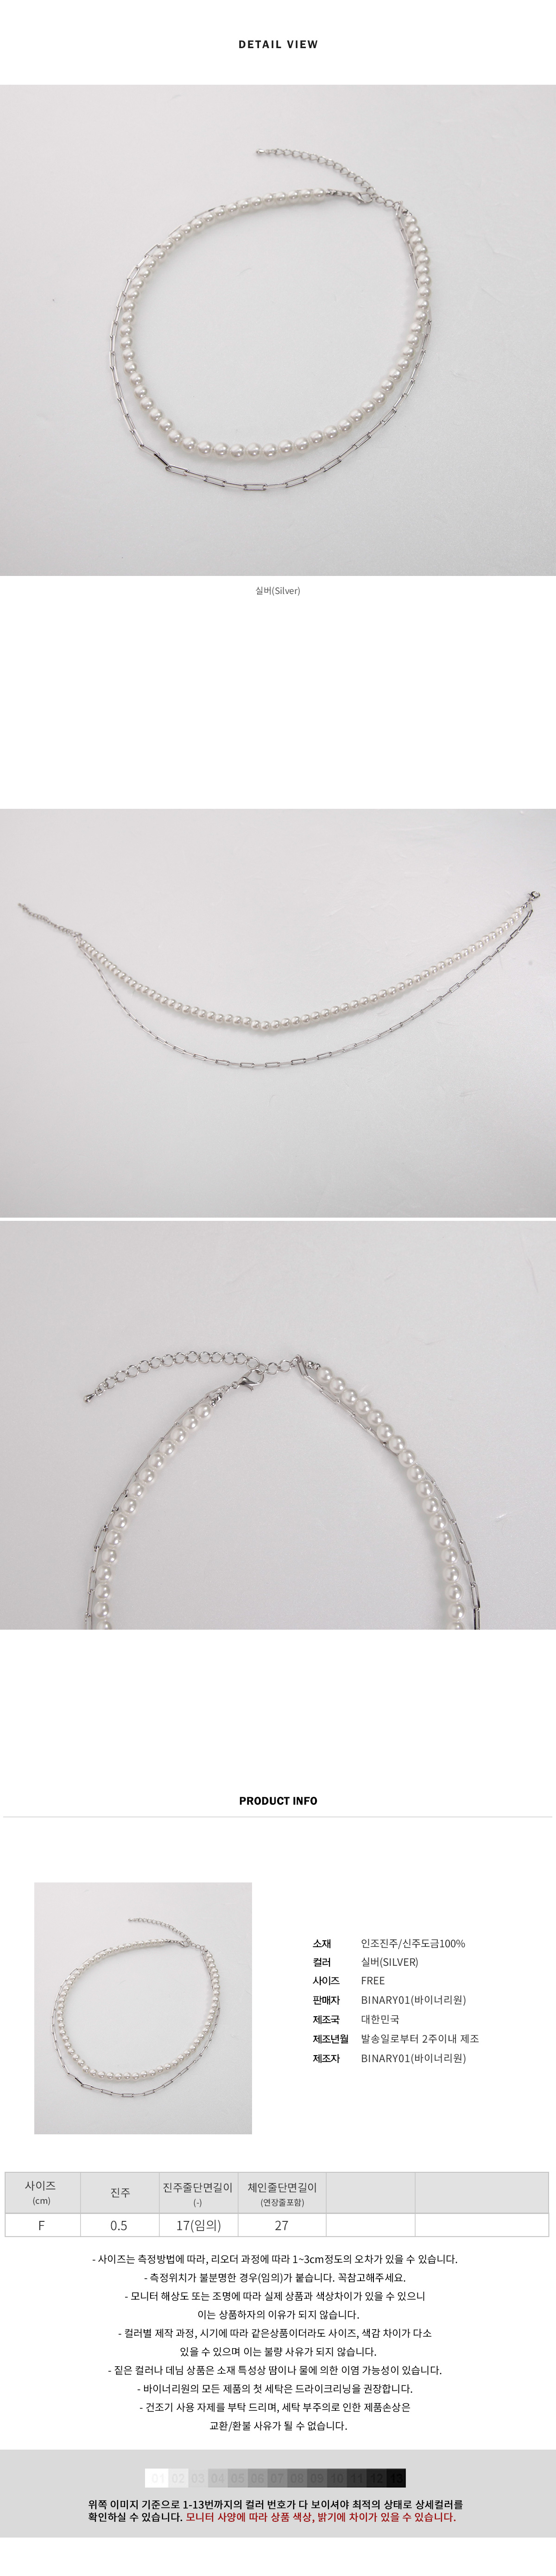 Pearl chain layered necklace